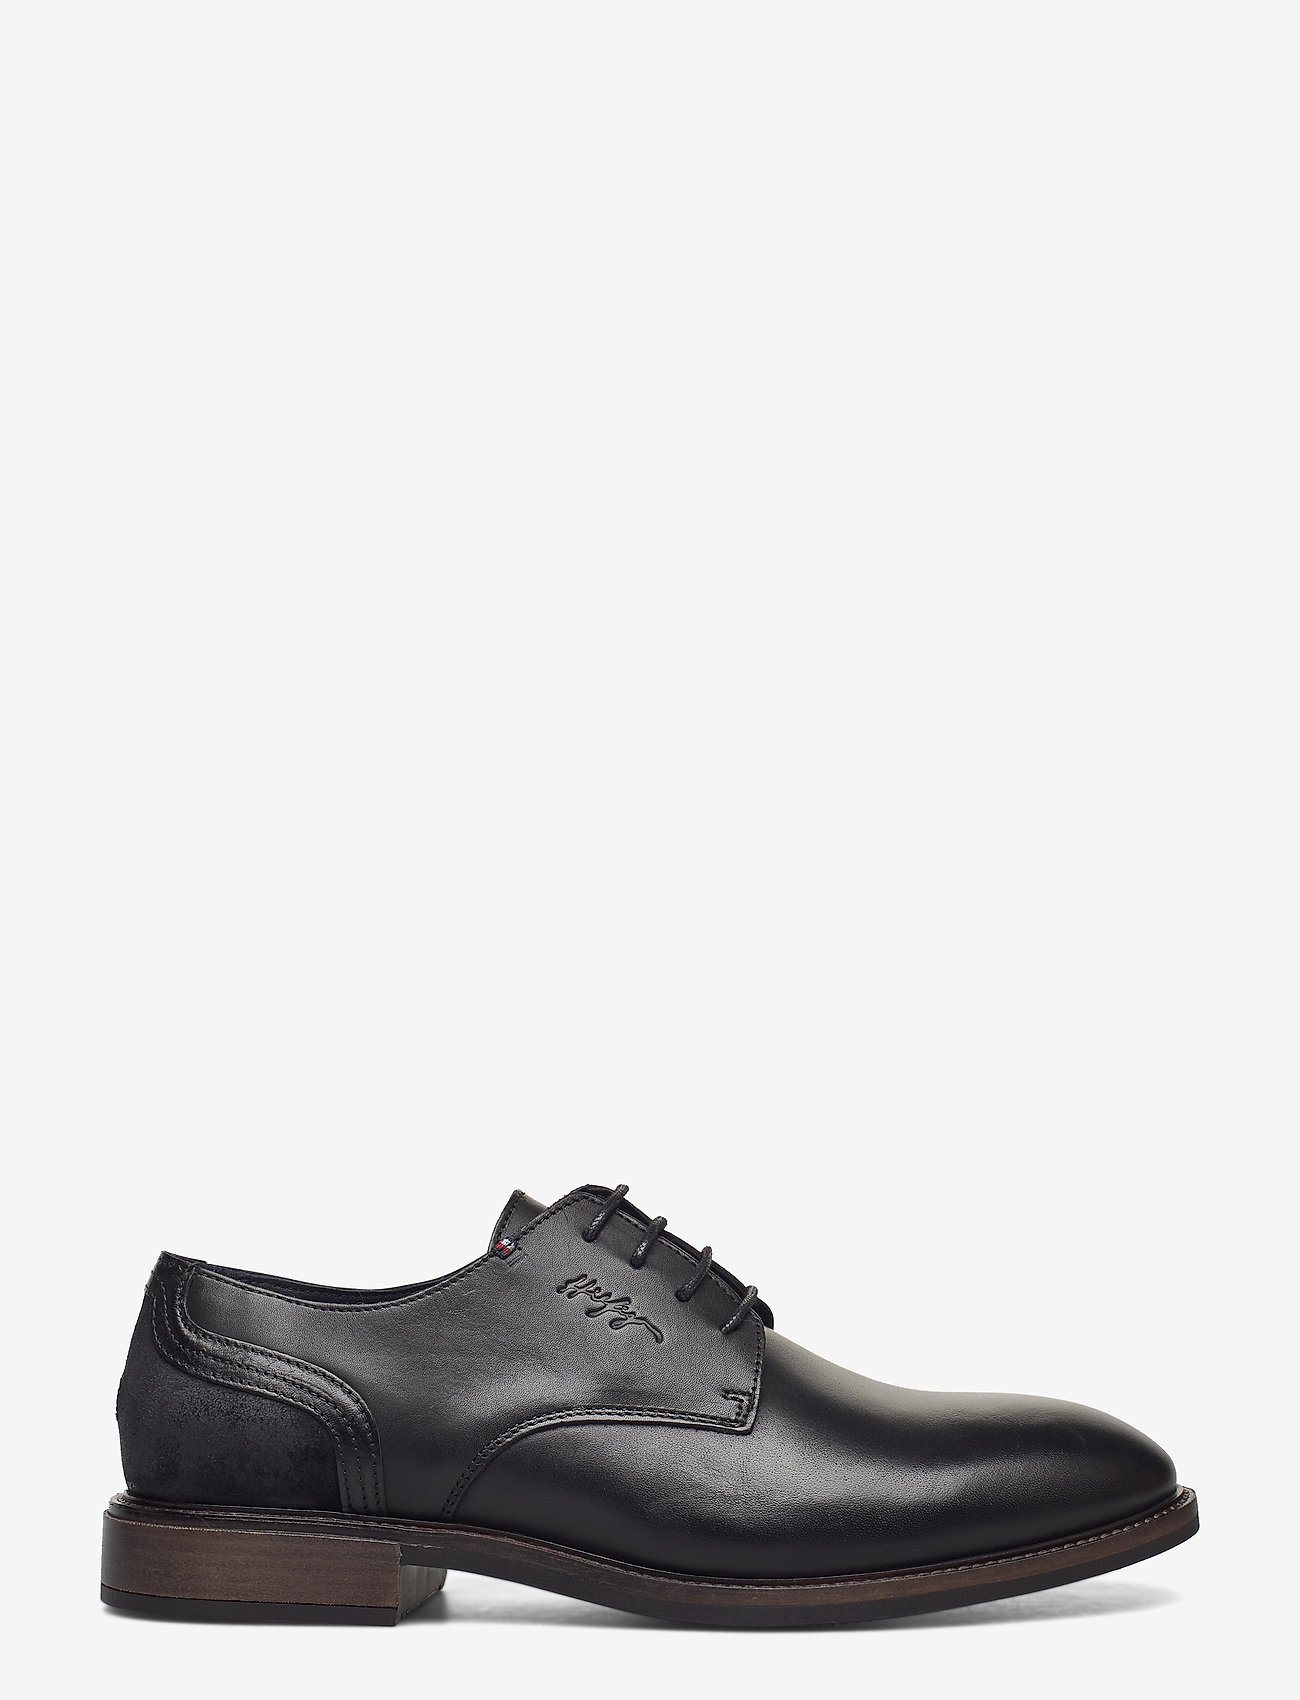 Tommy Hilfiger - ELEVATED LEATHER MIX SHOE - laced shoes - black - 1